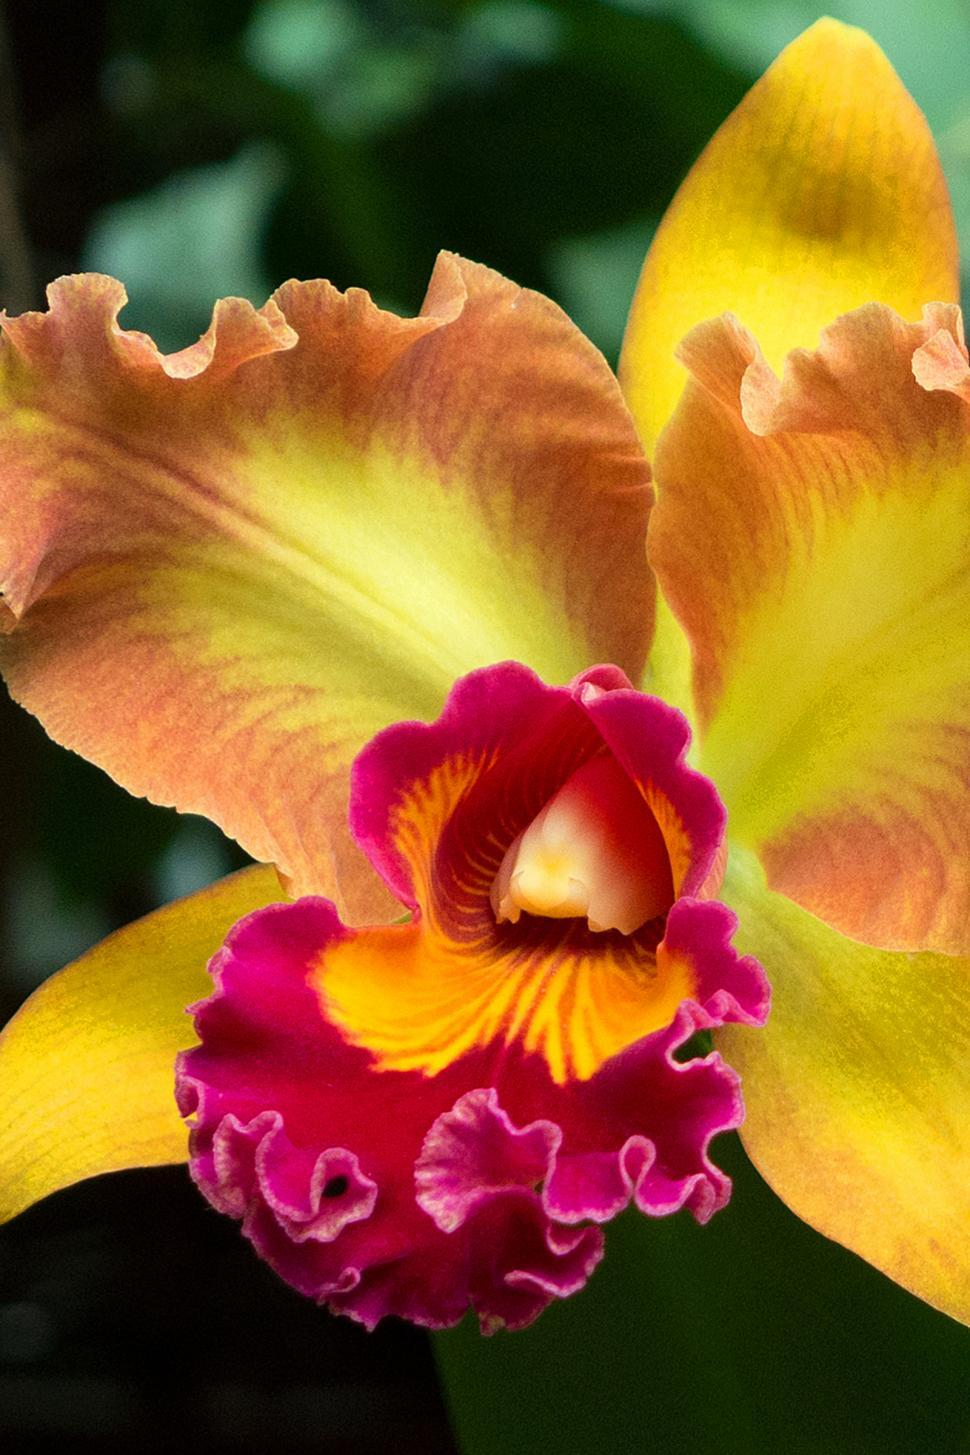 Download Free Stock HD Photo of Yellow Red Flower Cattleya Orchid Bloom Online